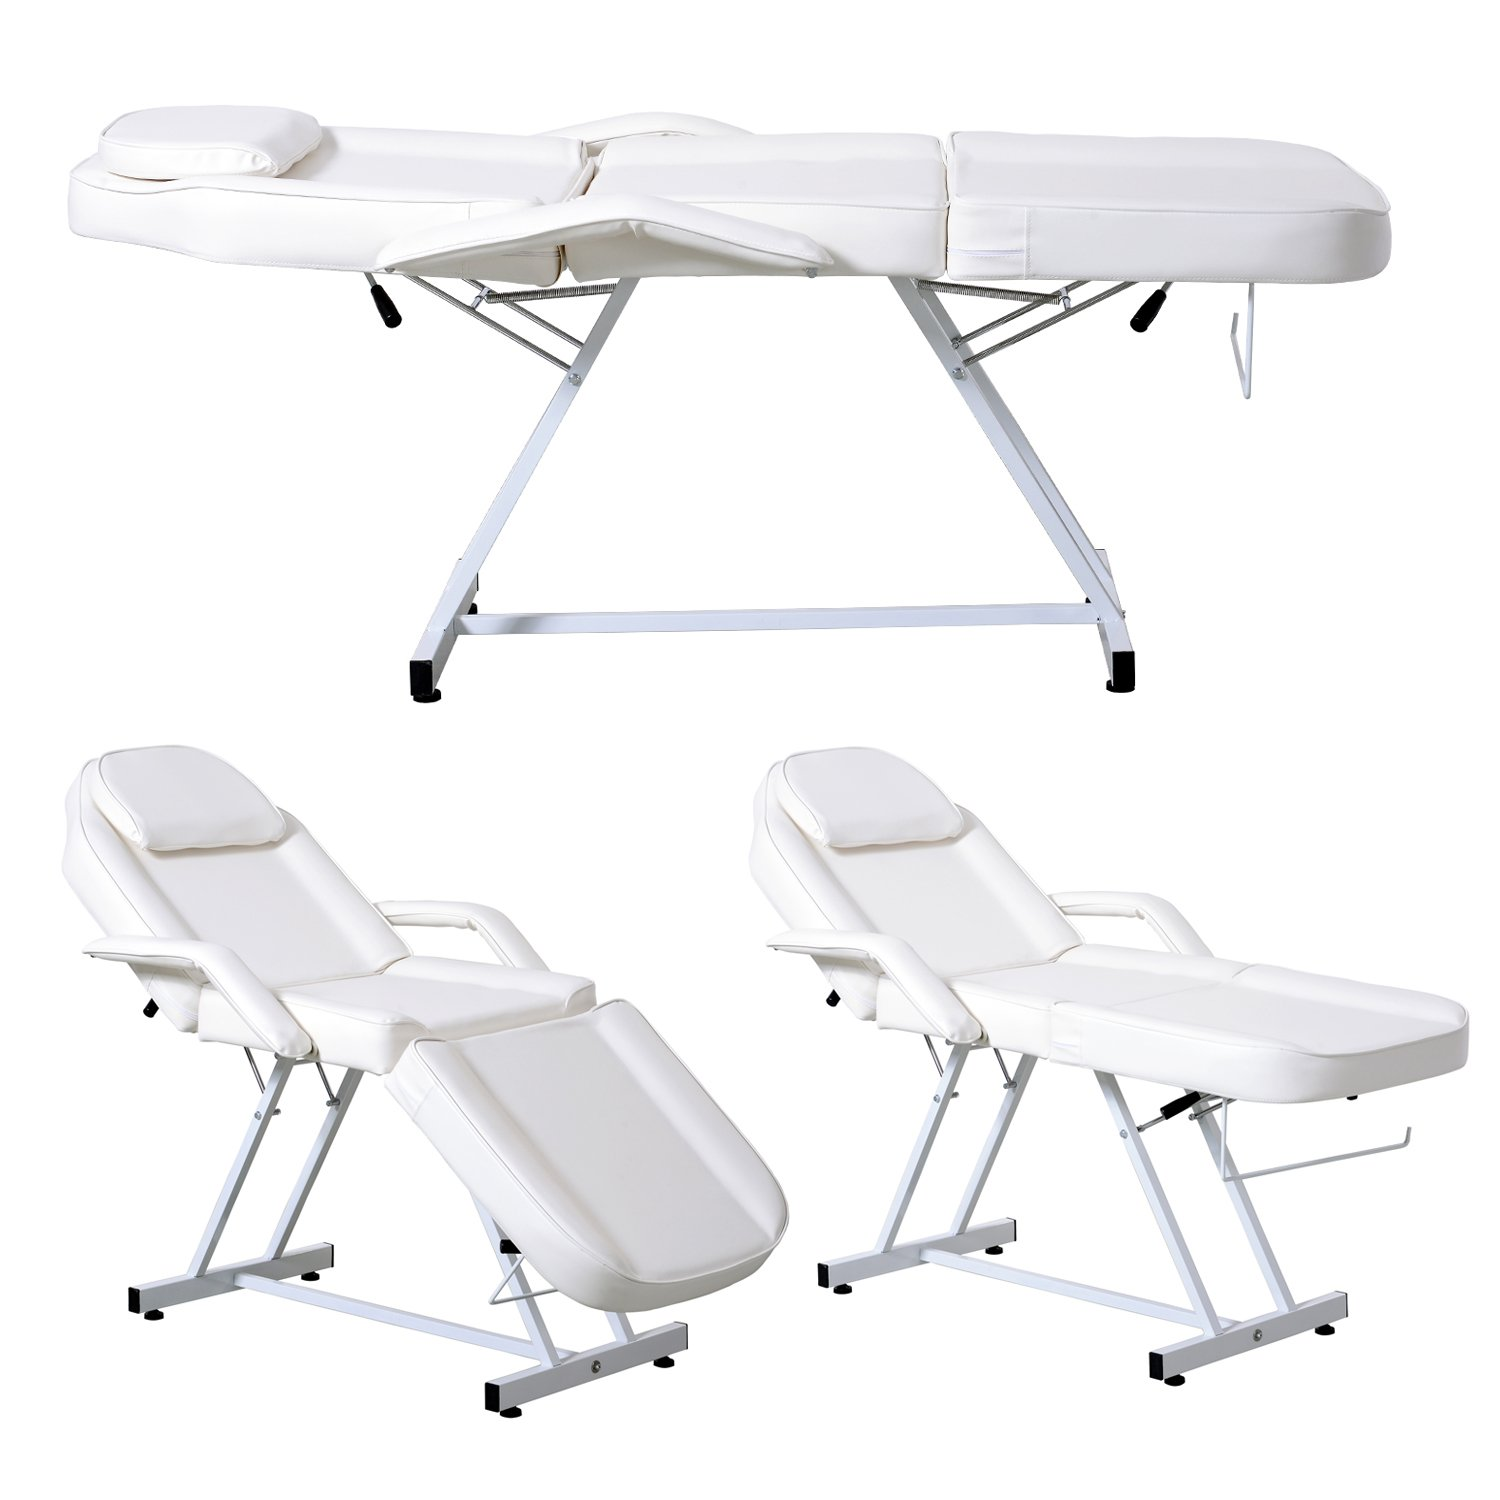 Apelila Beauty Salon Chair Massage Table Bed Folding Therapy SPA Bed Facial Tattoo Chair White